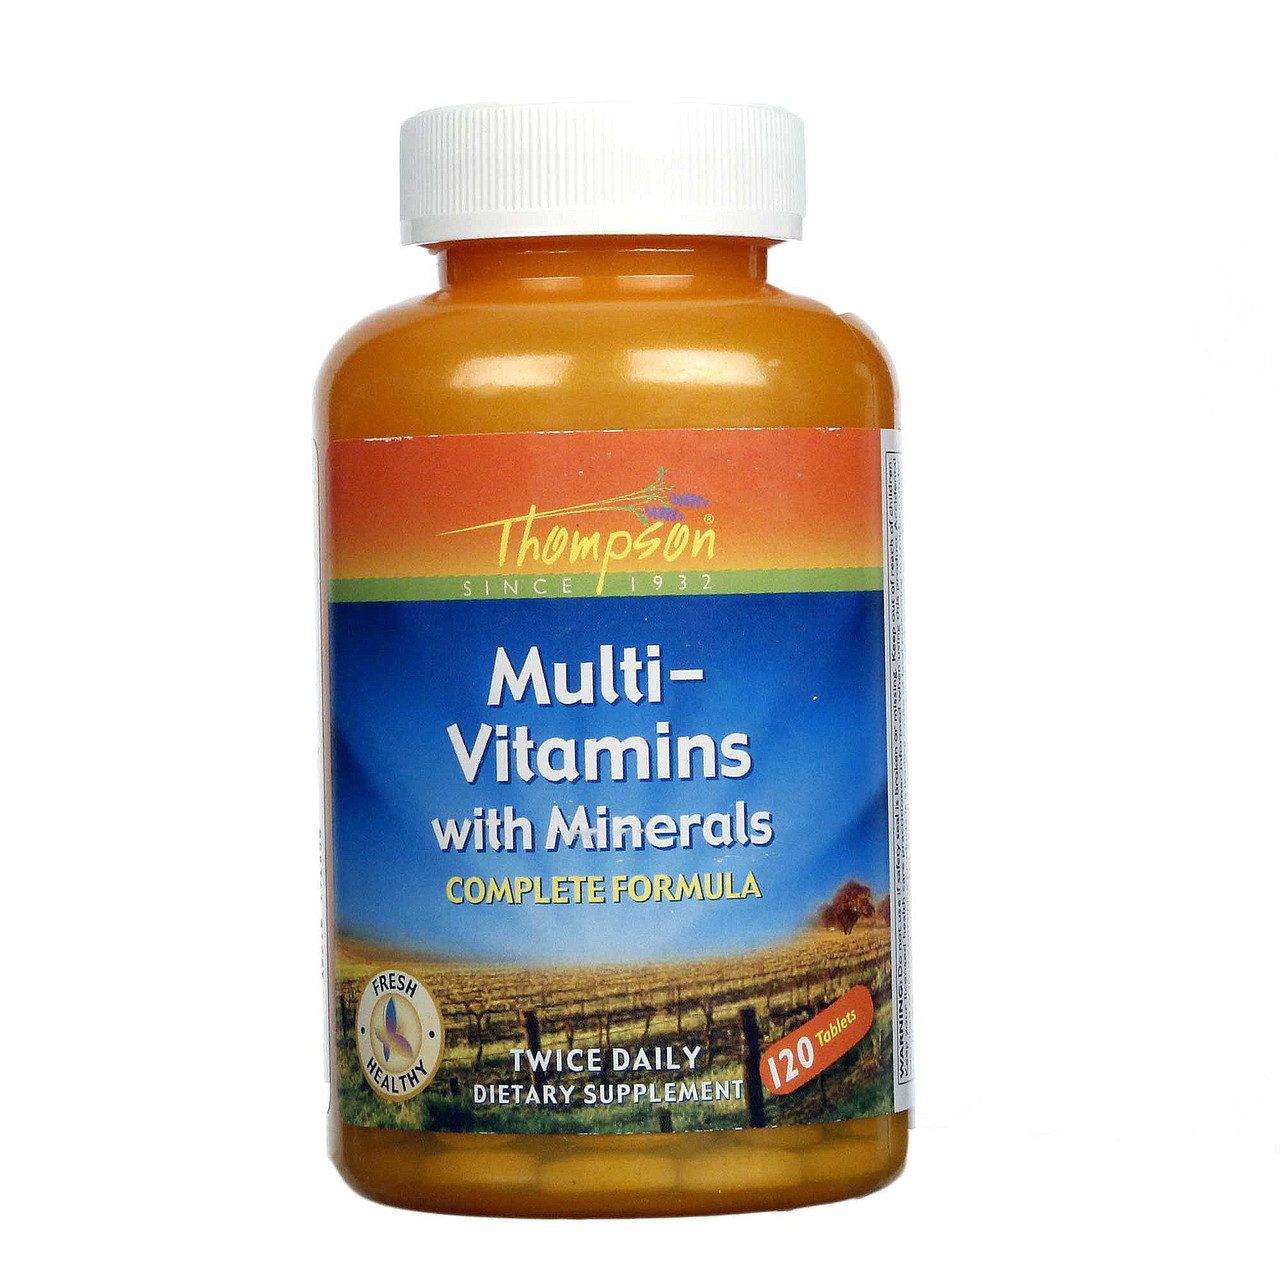 Витамины Thompson Multi-Vitamin with Minerals 120 таблеток